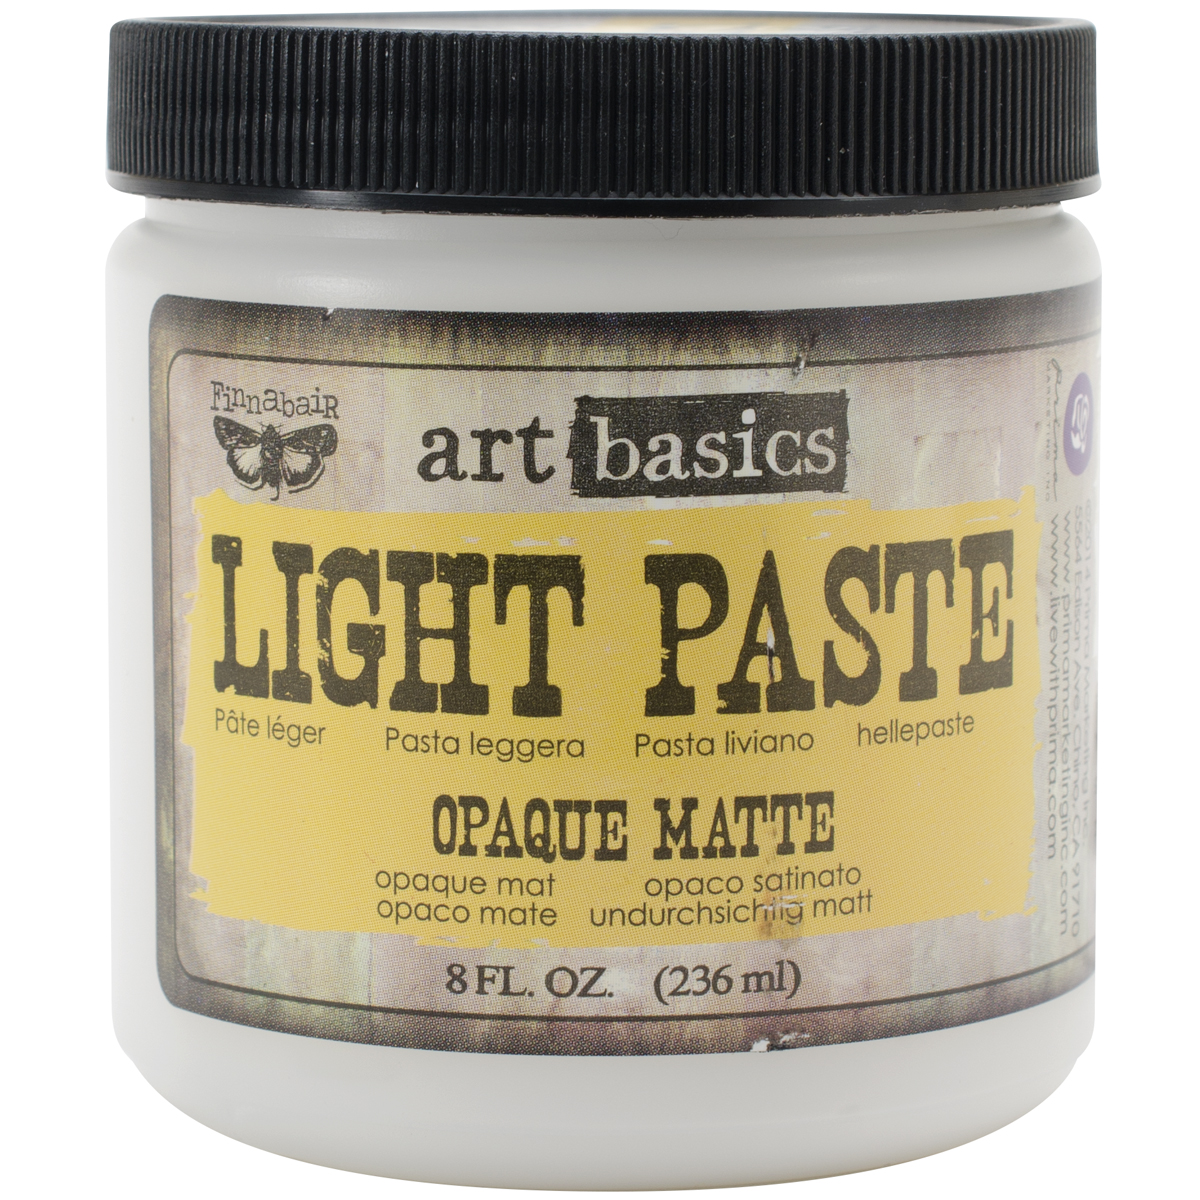 Finnabair Art Basics Light Paste 8oz-Opaque Matte